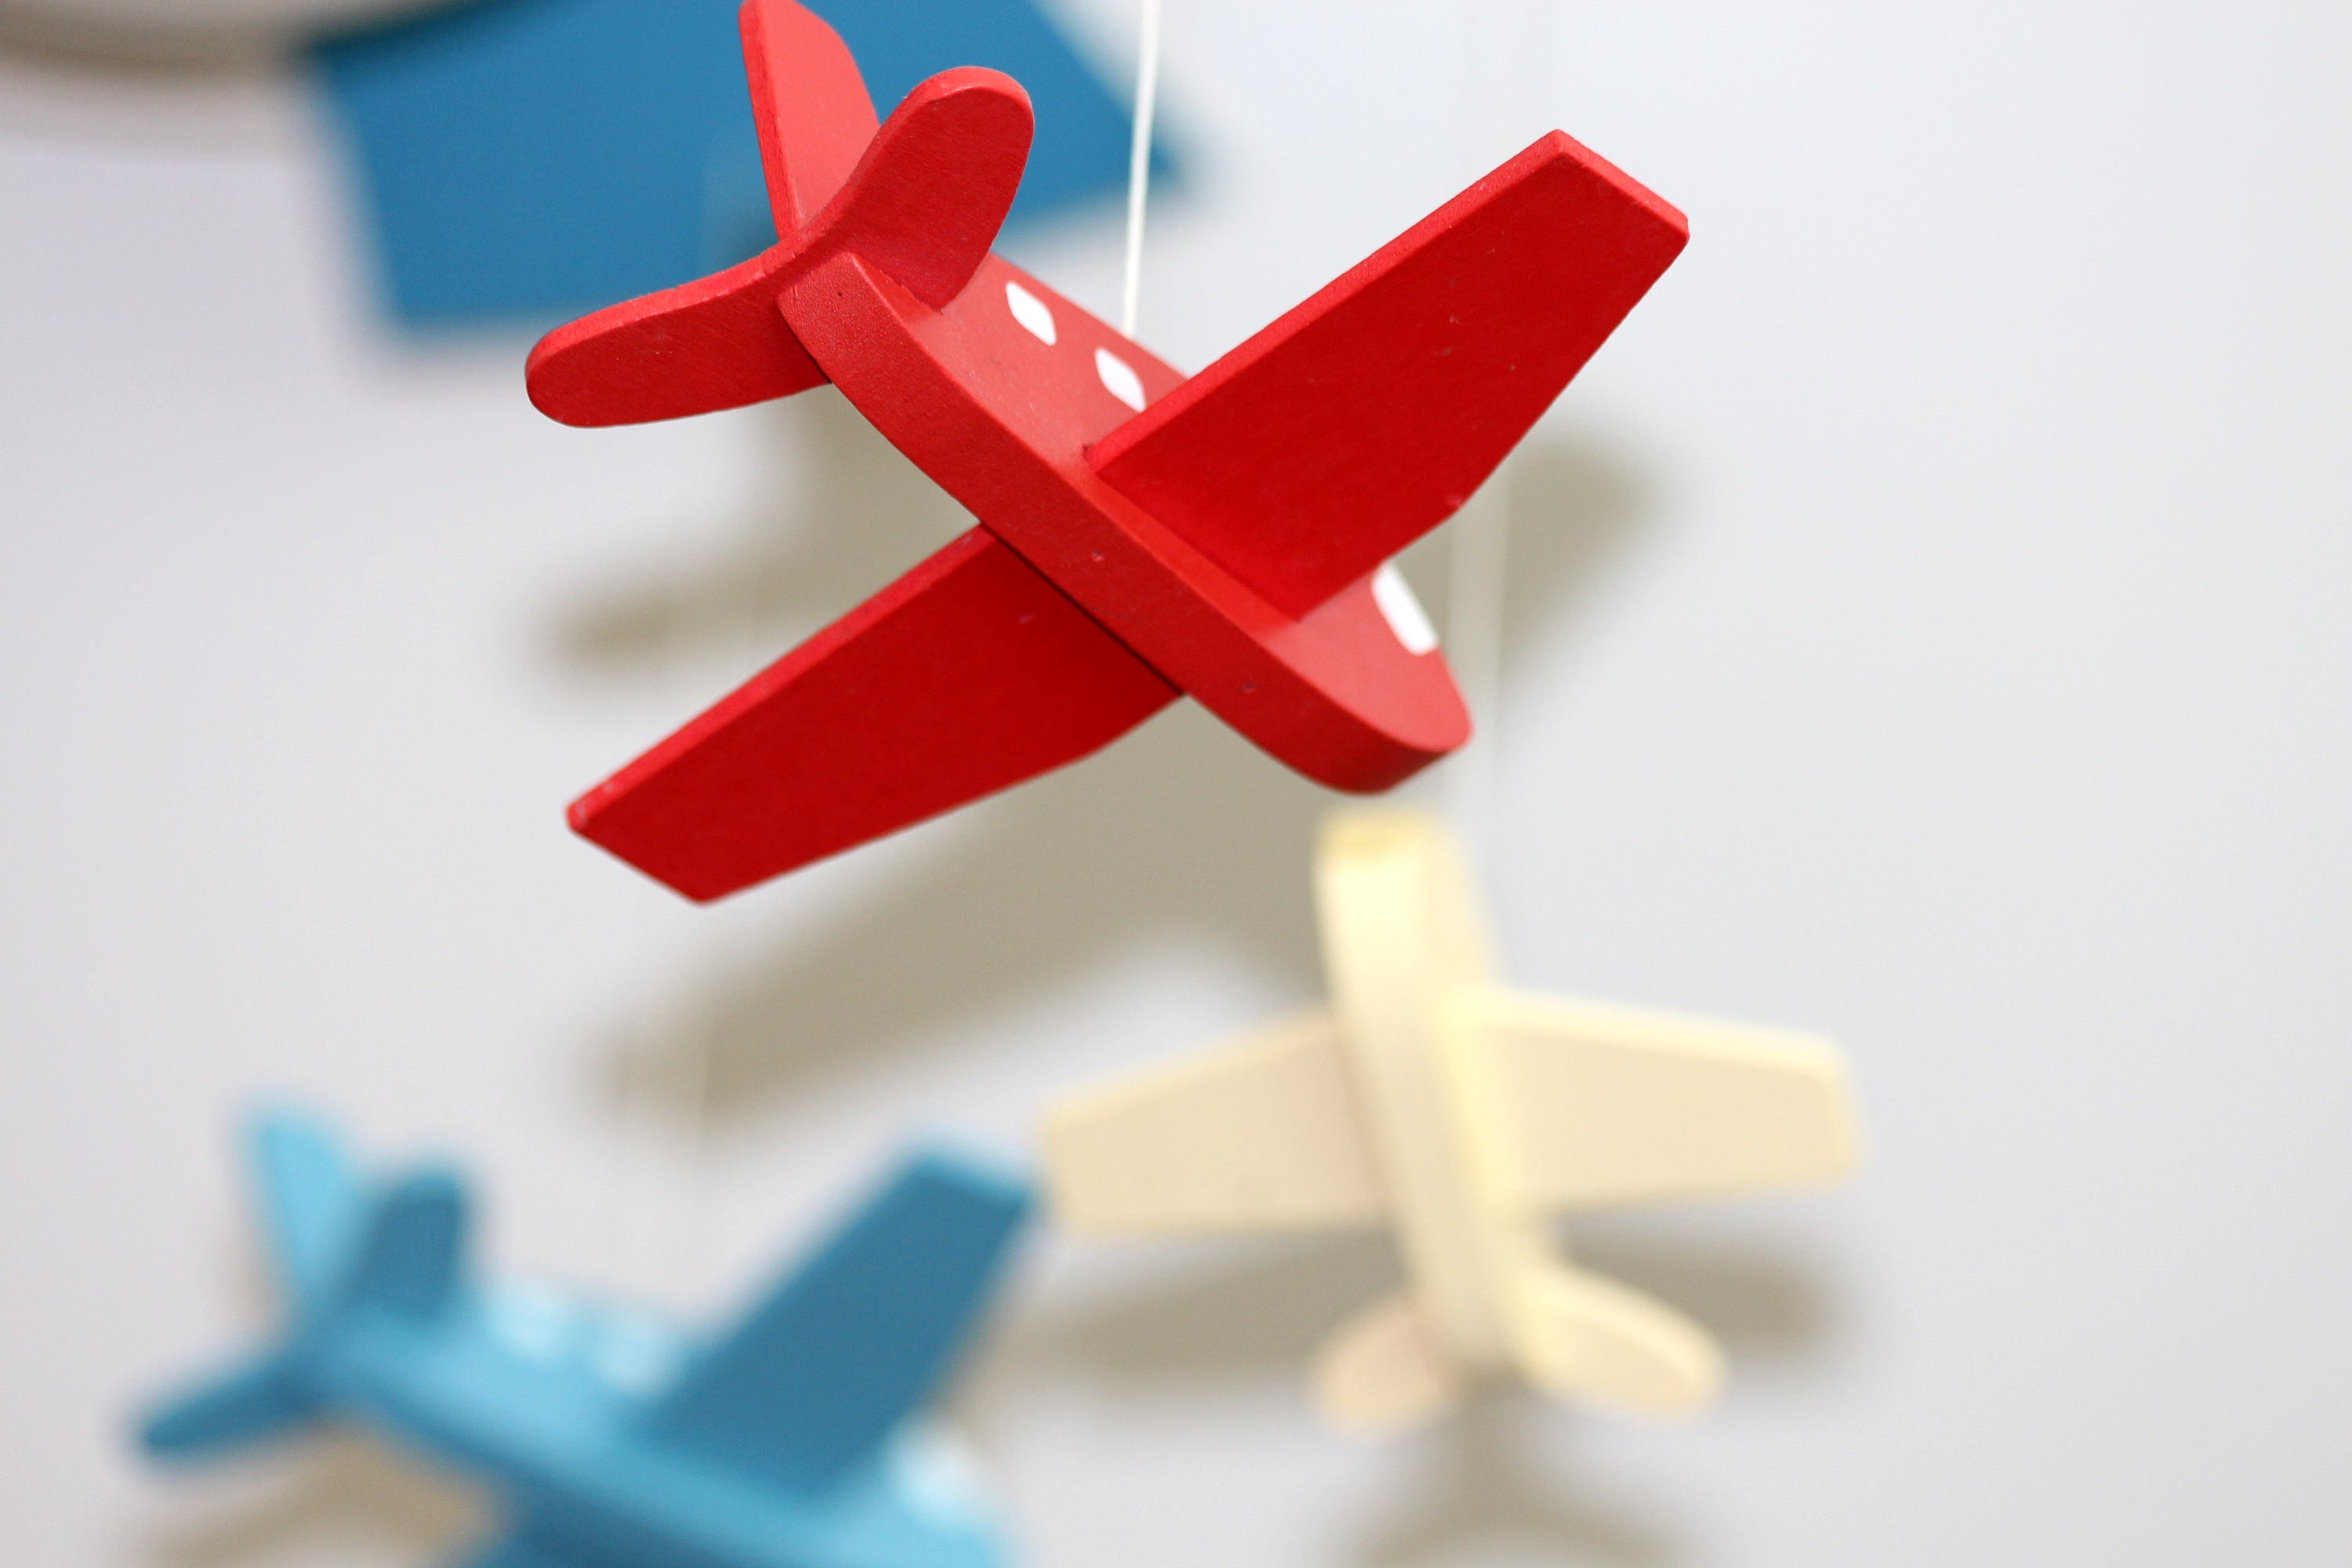 Miniature of a Plane